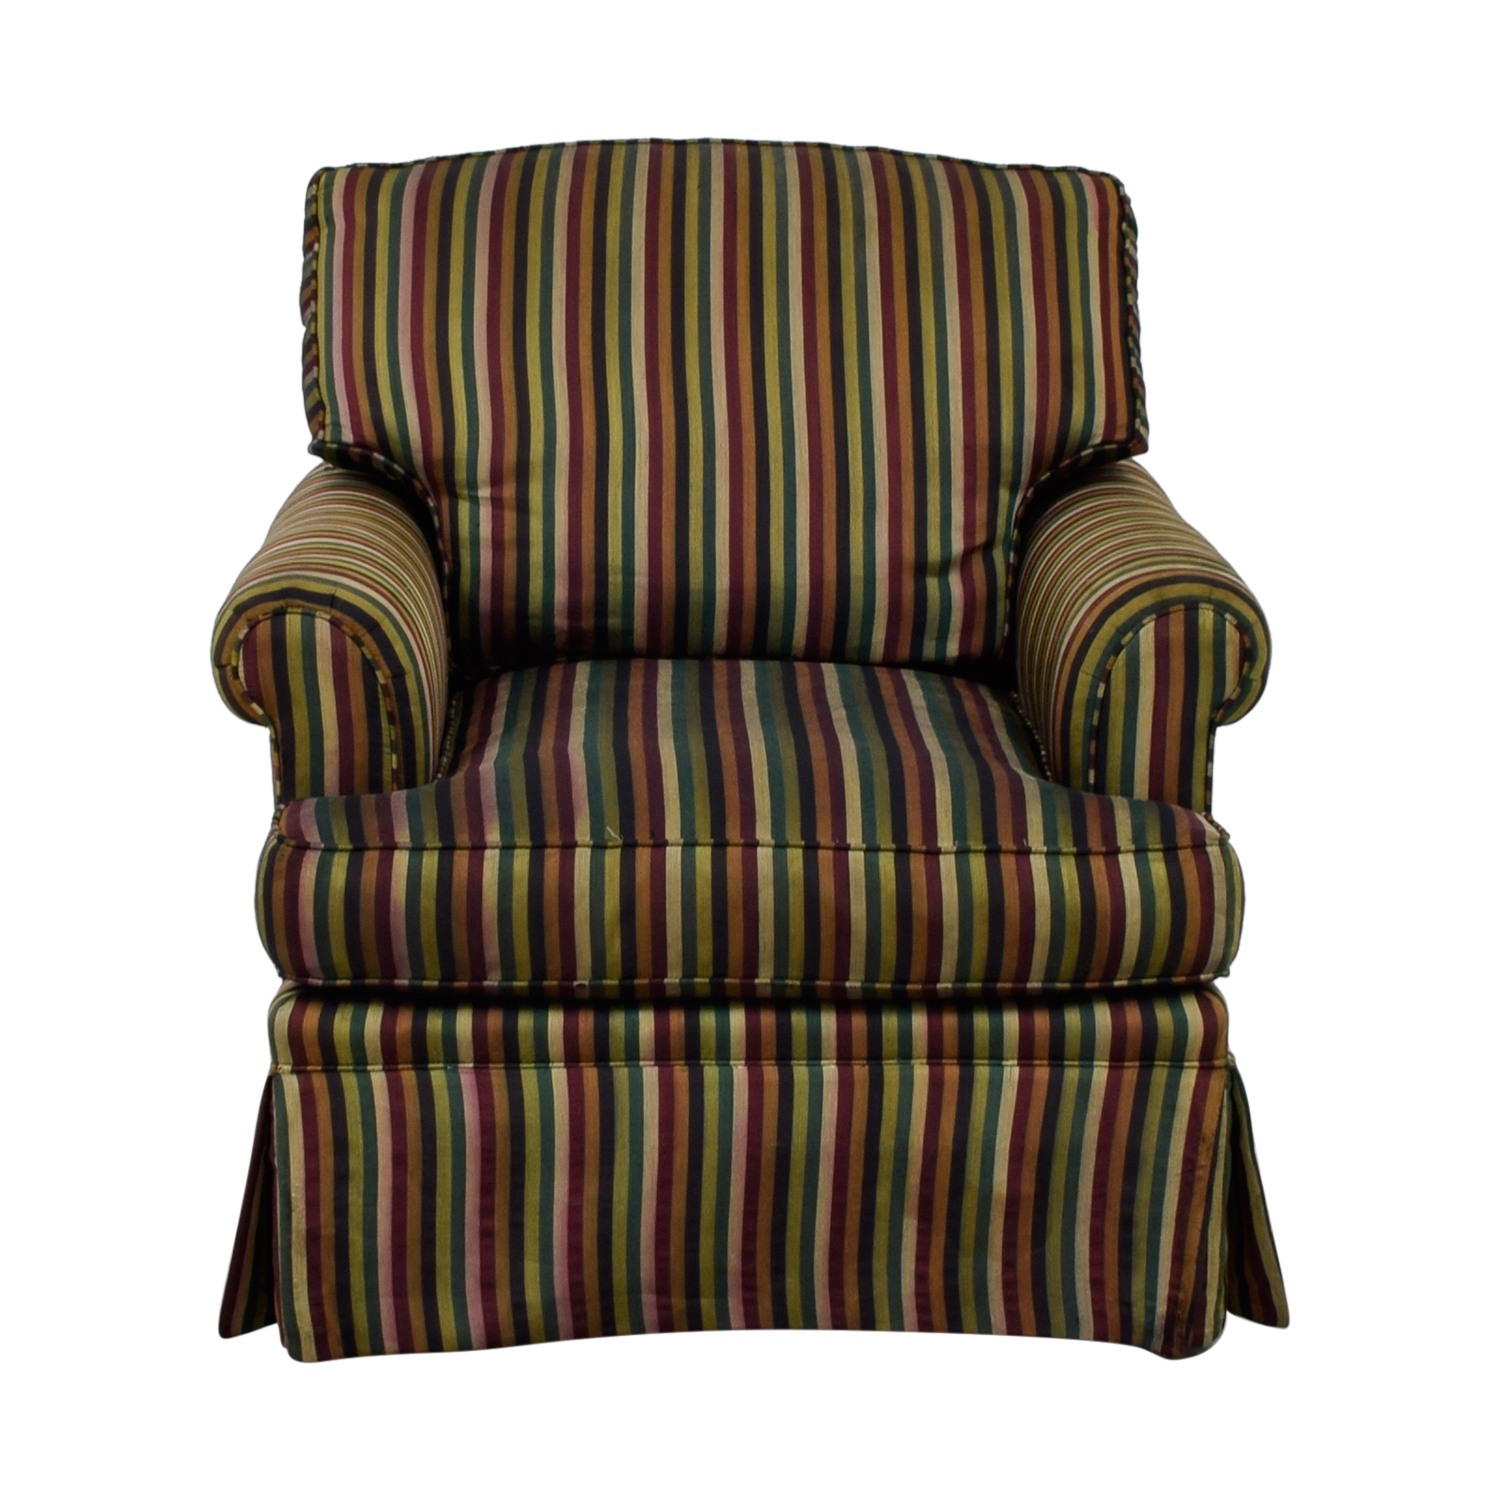 shop The Lane Company Pearson Stripe Chair The Lane Company